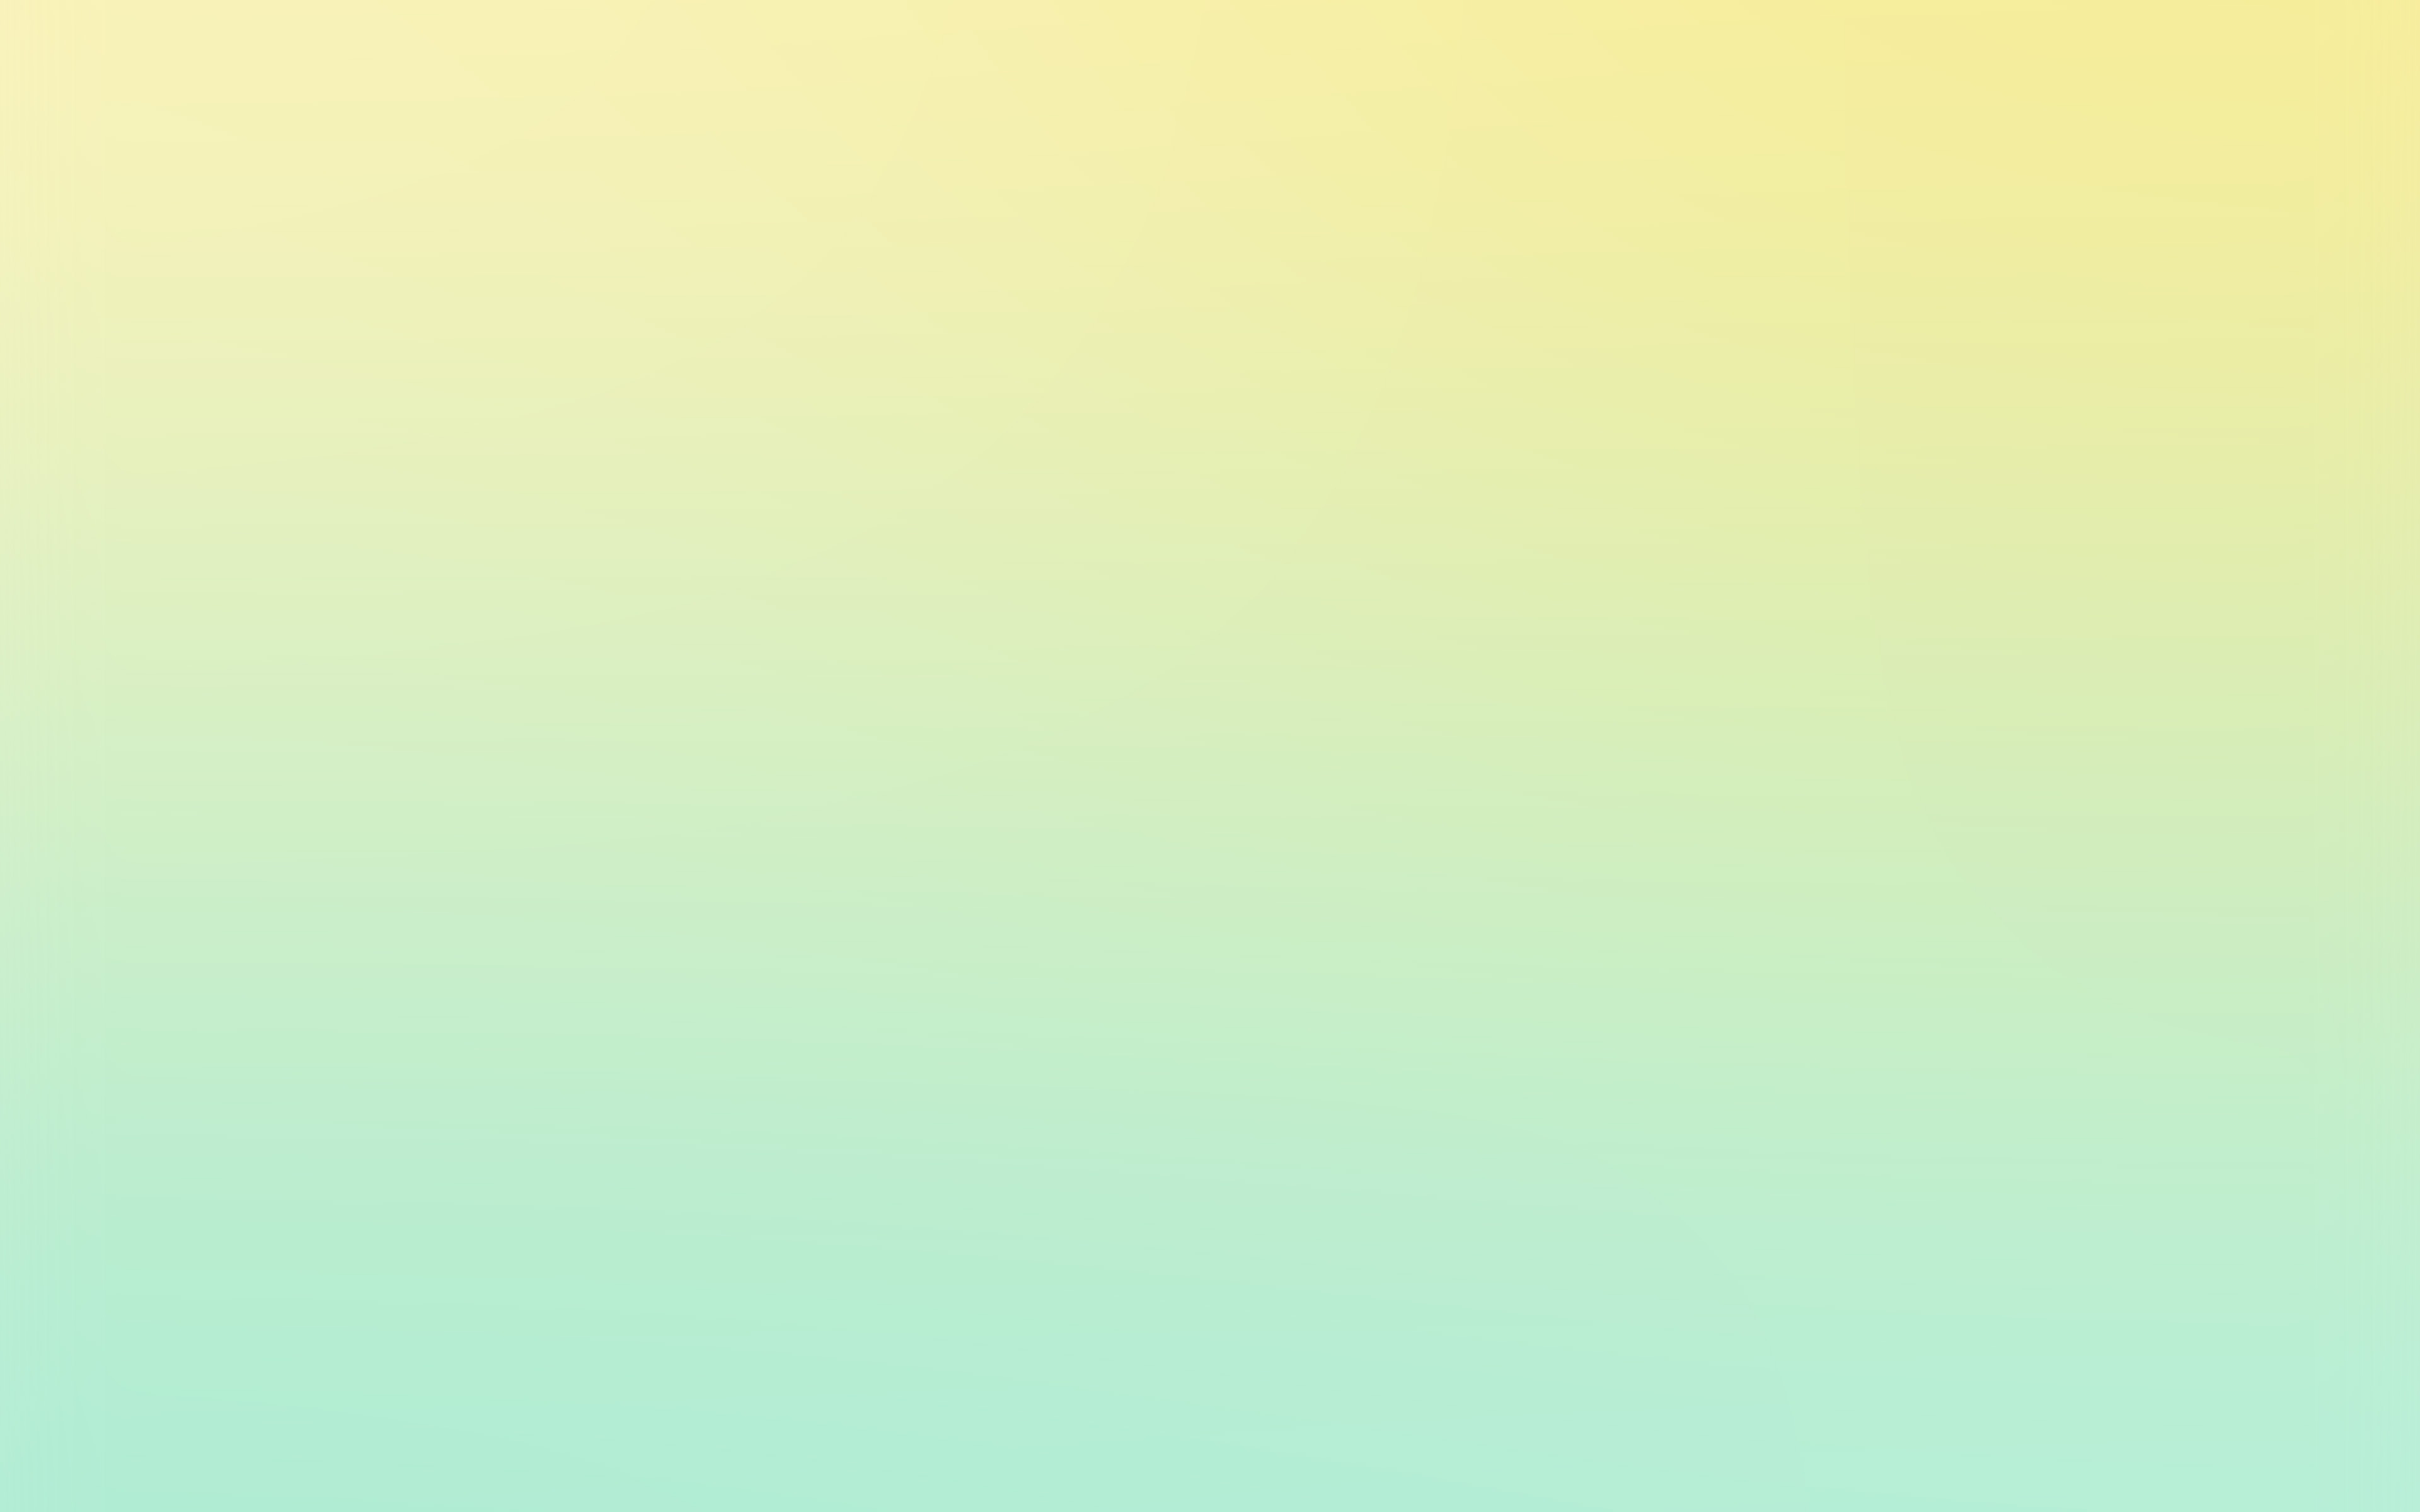 Cute Baby Pc Wallpaper Sl91 Yellow Green Pastel Blur Gradation Wallpaper